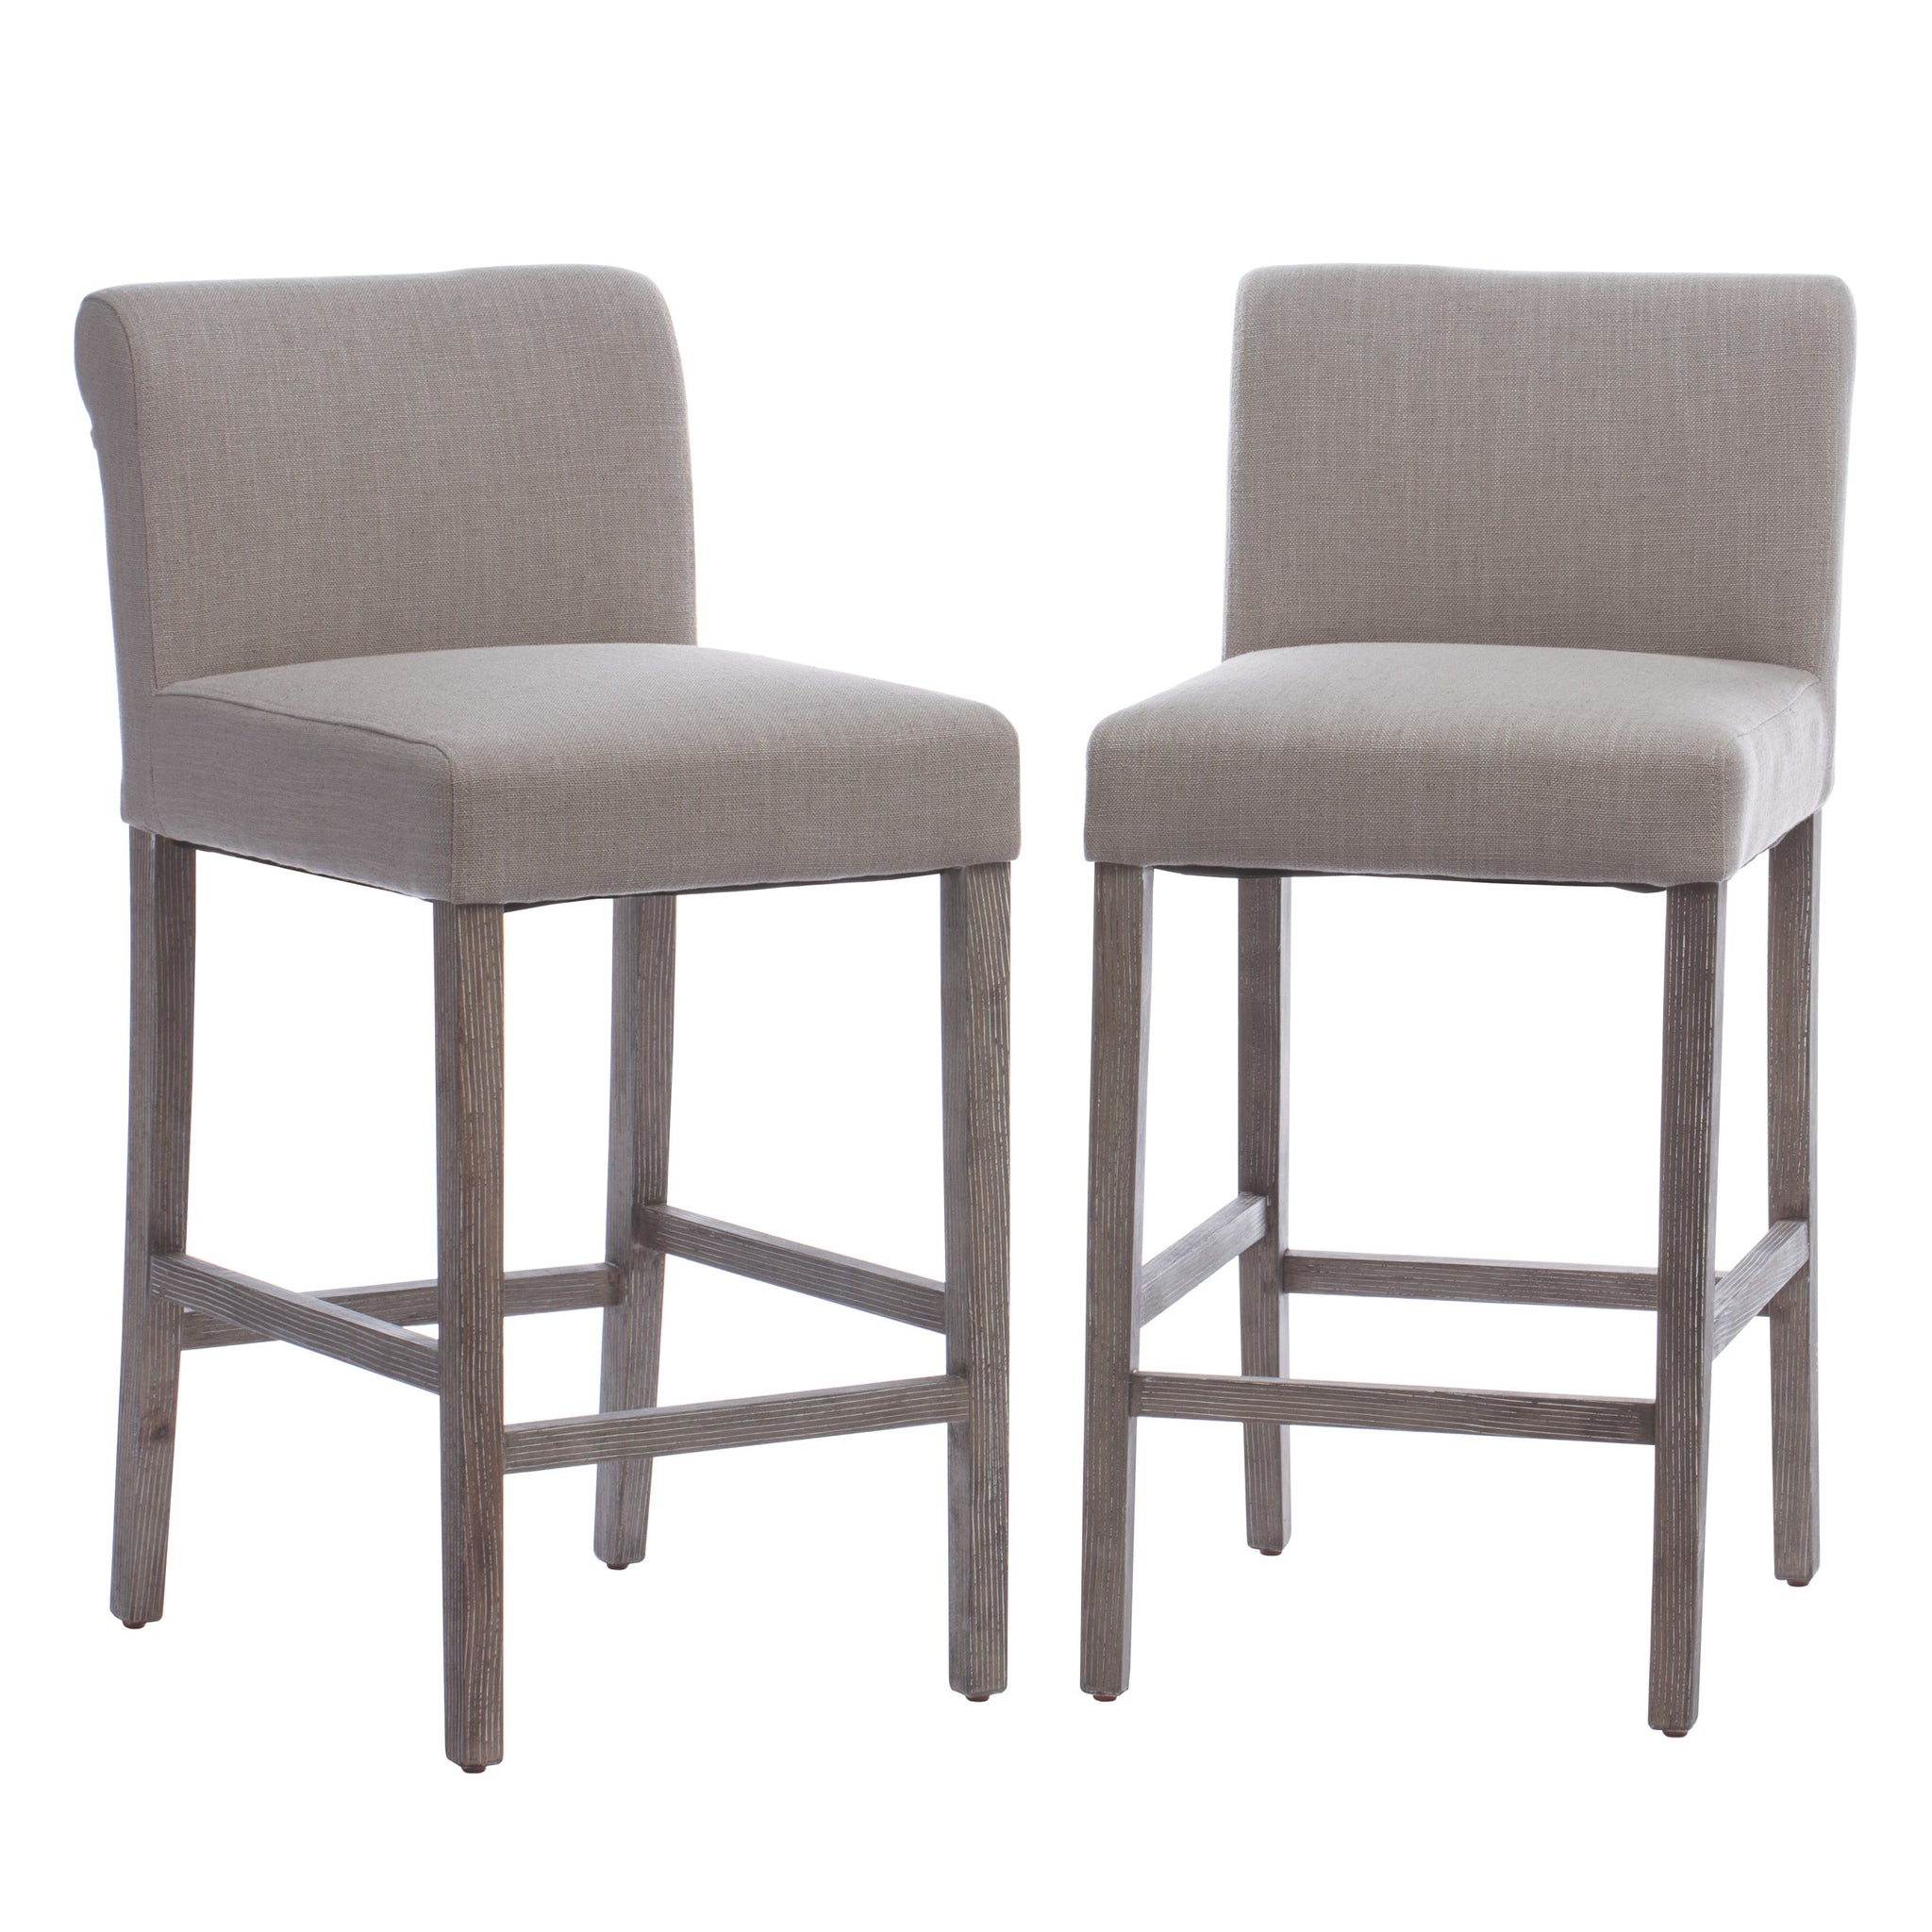 Fantastic Beige Linen Counter Stools Set Of 2 Ncnpc Chair Design For Home Ncnpcorg